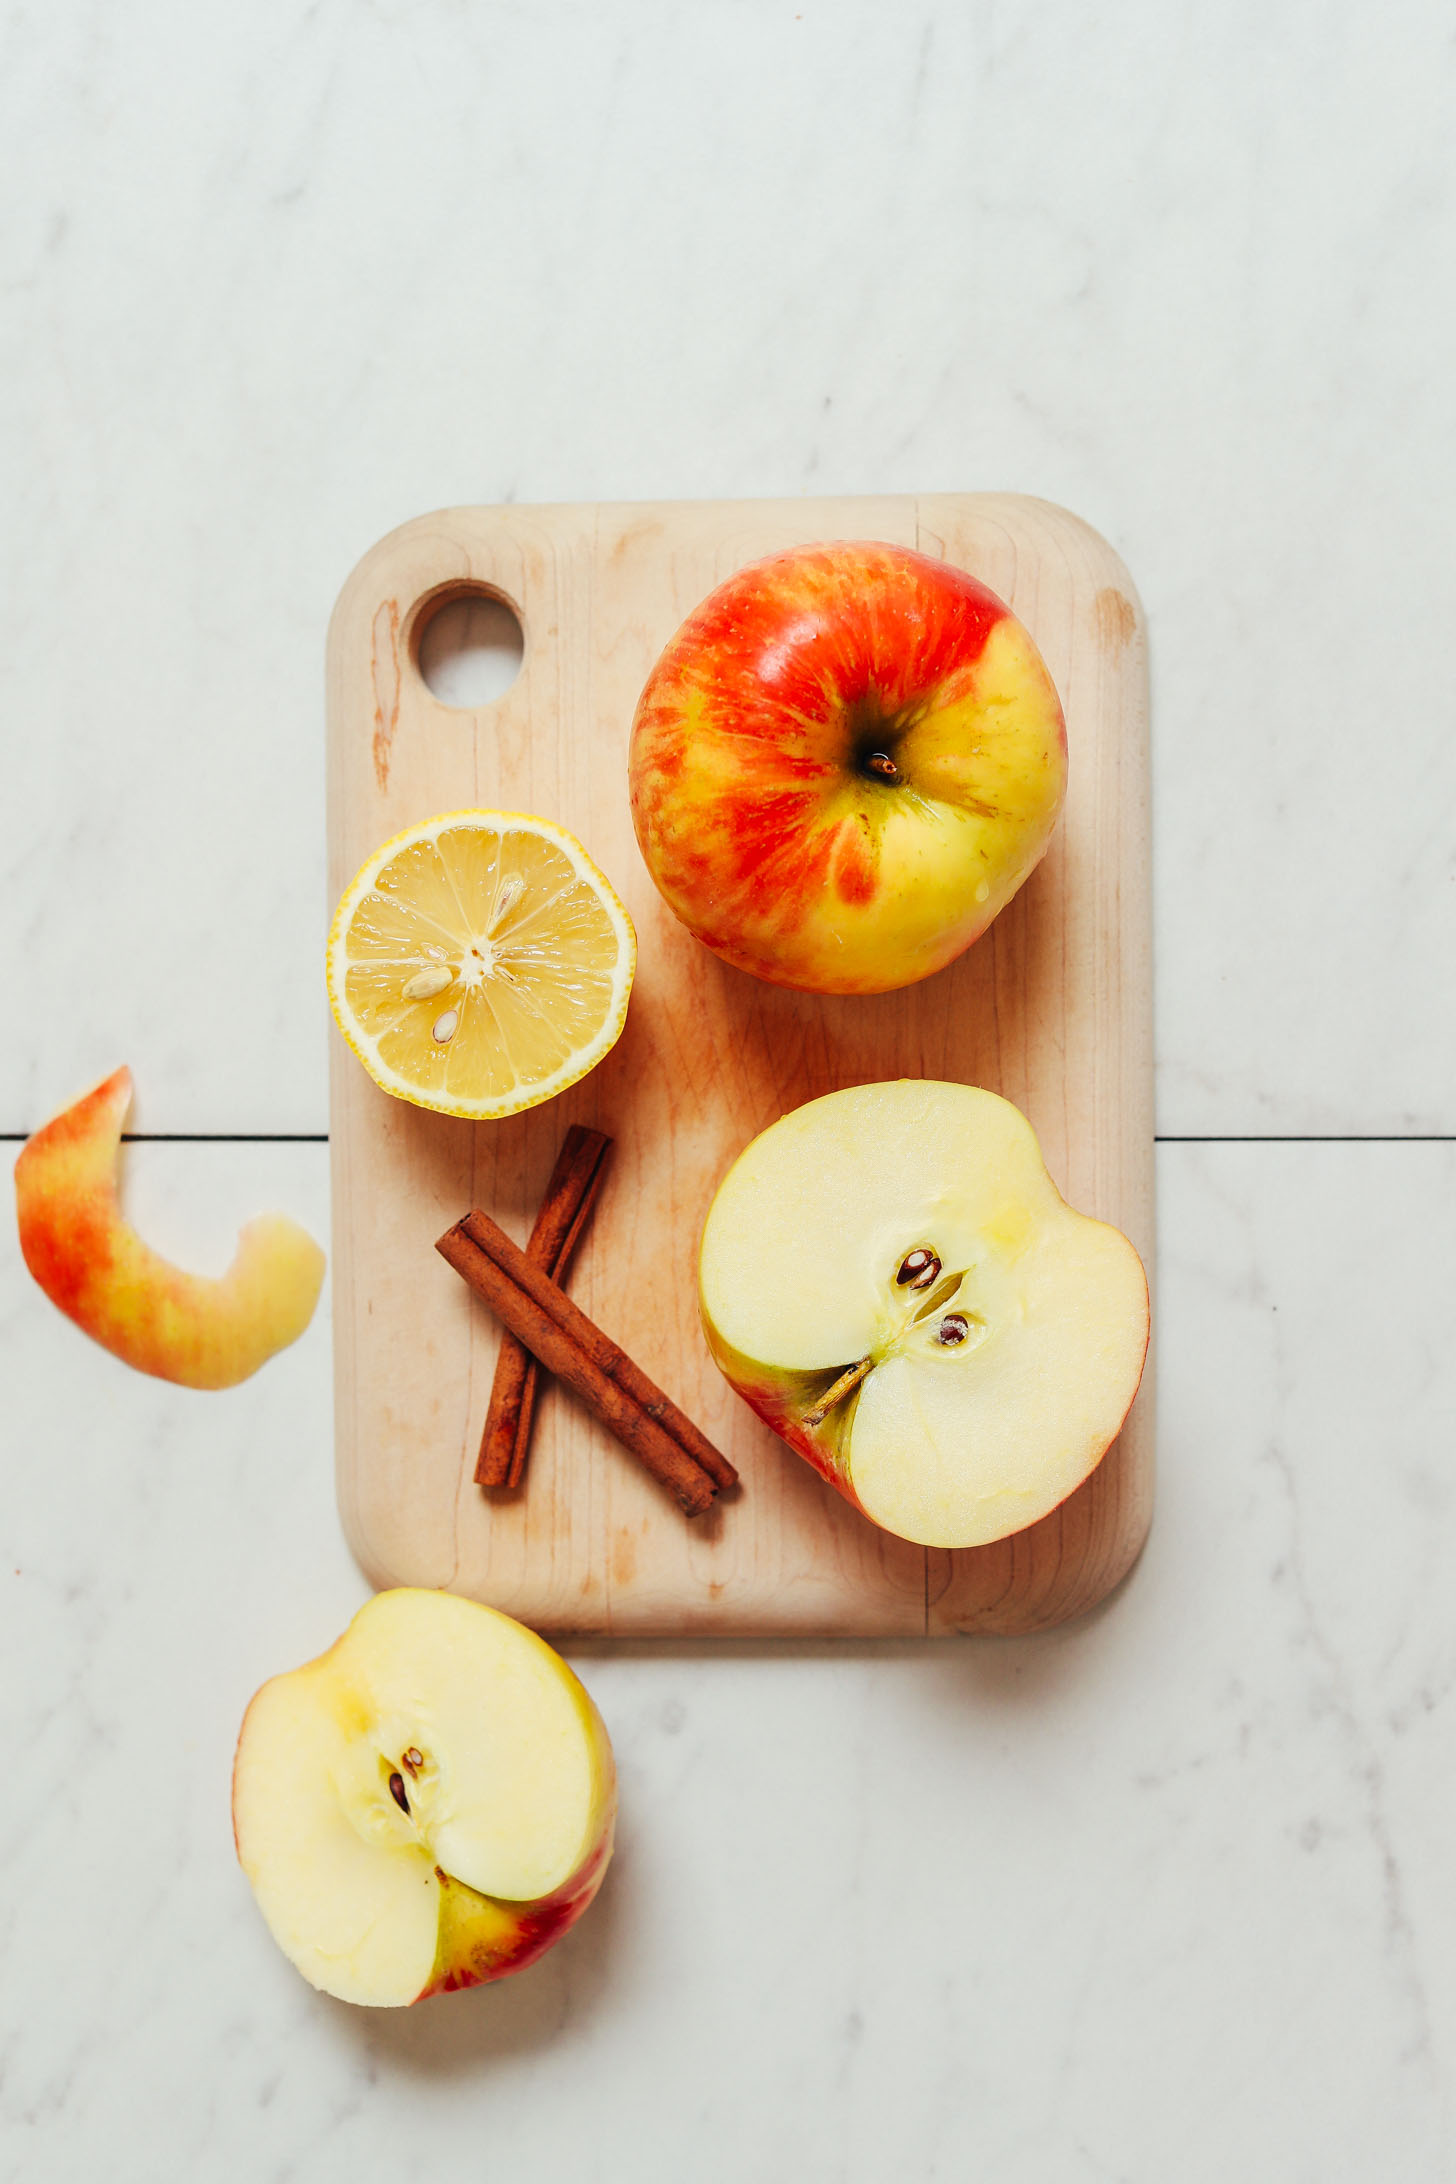 Cutting board with apples, lemon, and cinnamon sticks